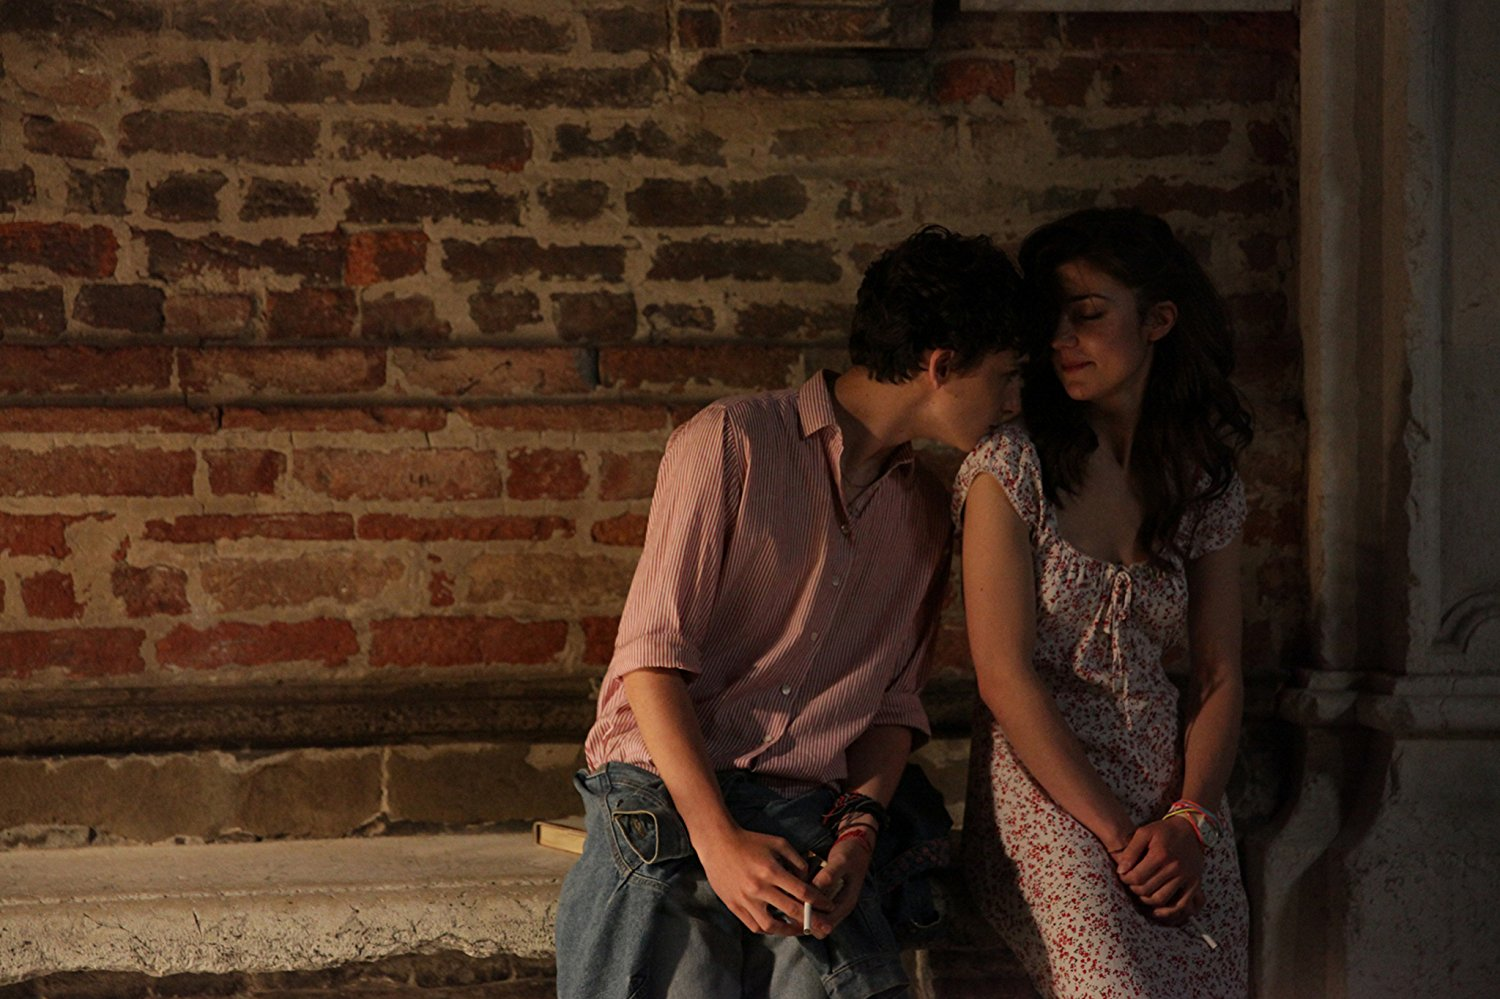 El misterio del amor, reseña de Call Me By Your Name